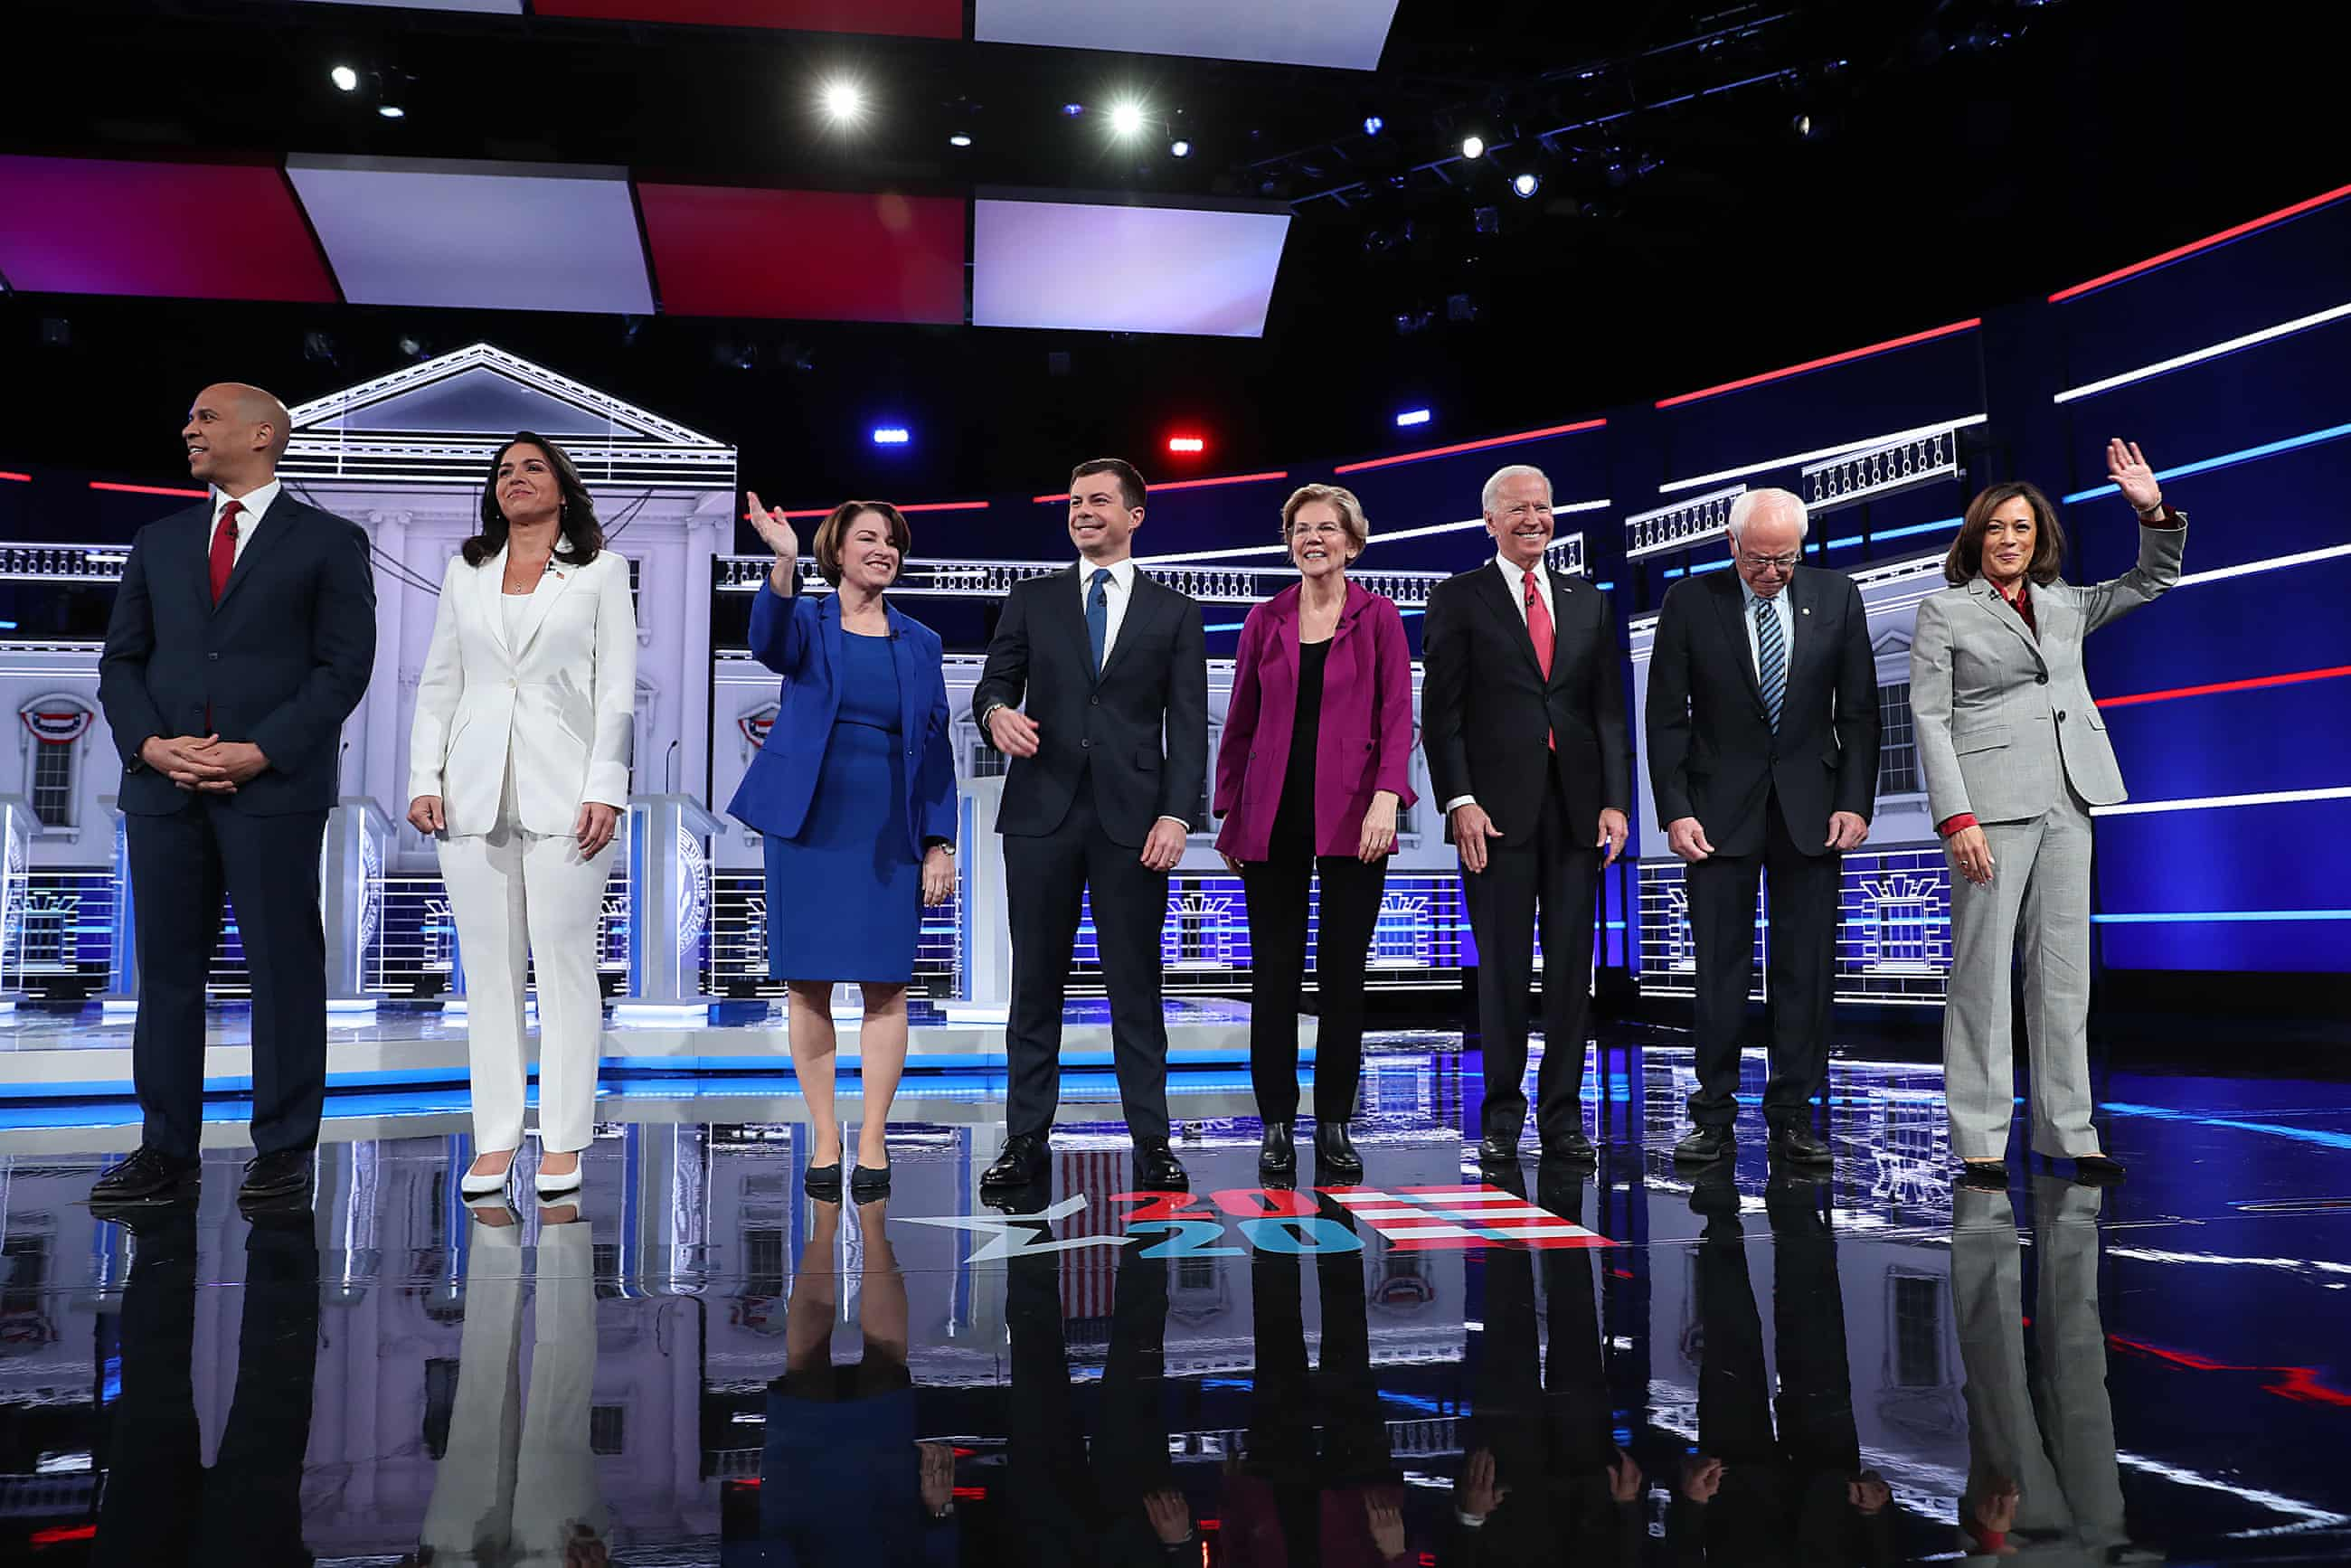 The candidates at the Tyler Perry Studios in Atlanta. Sankara Lumumba, who watched the debate, said the debates had largely become about 'who can beat Trump'.